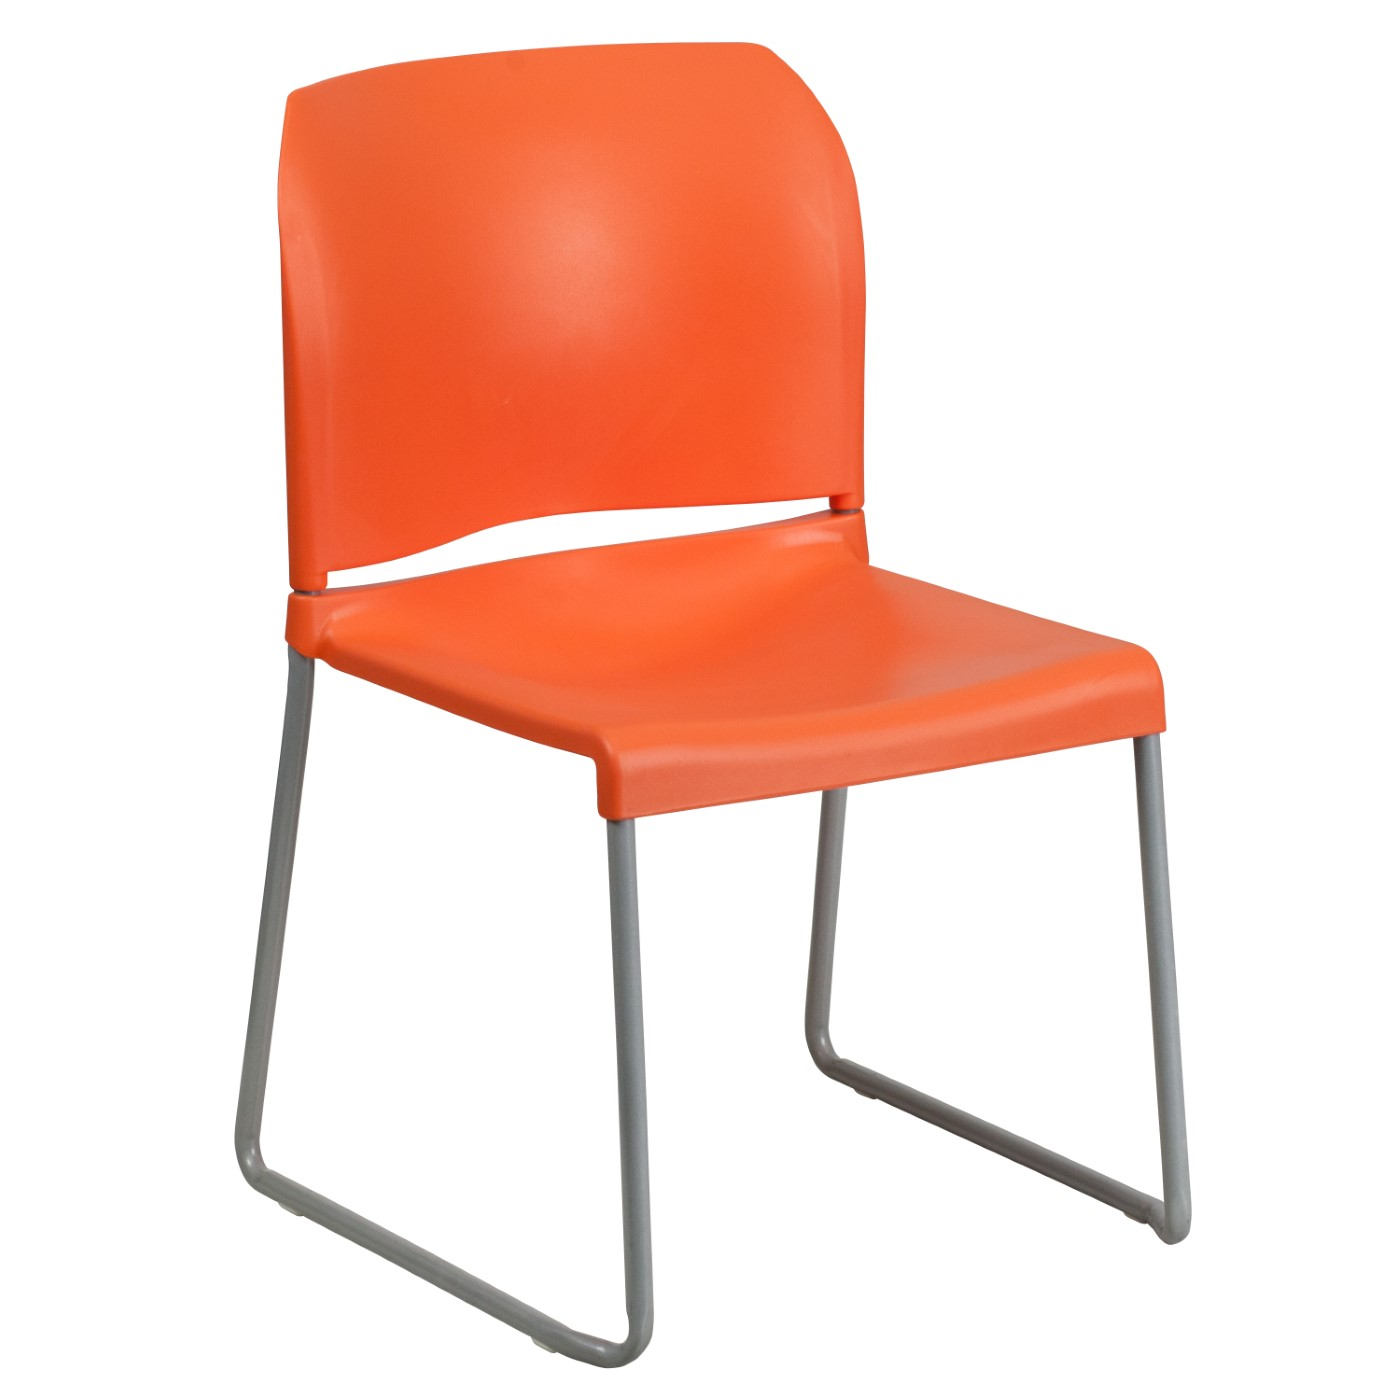 TOUGH ENOUGH Series 880 lb. Capacity Orange Full Back Contoured Stack Chair with Gray Powder Coated Sled Base